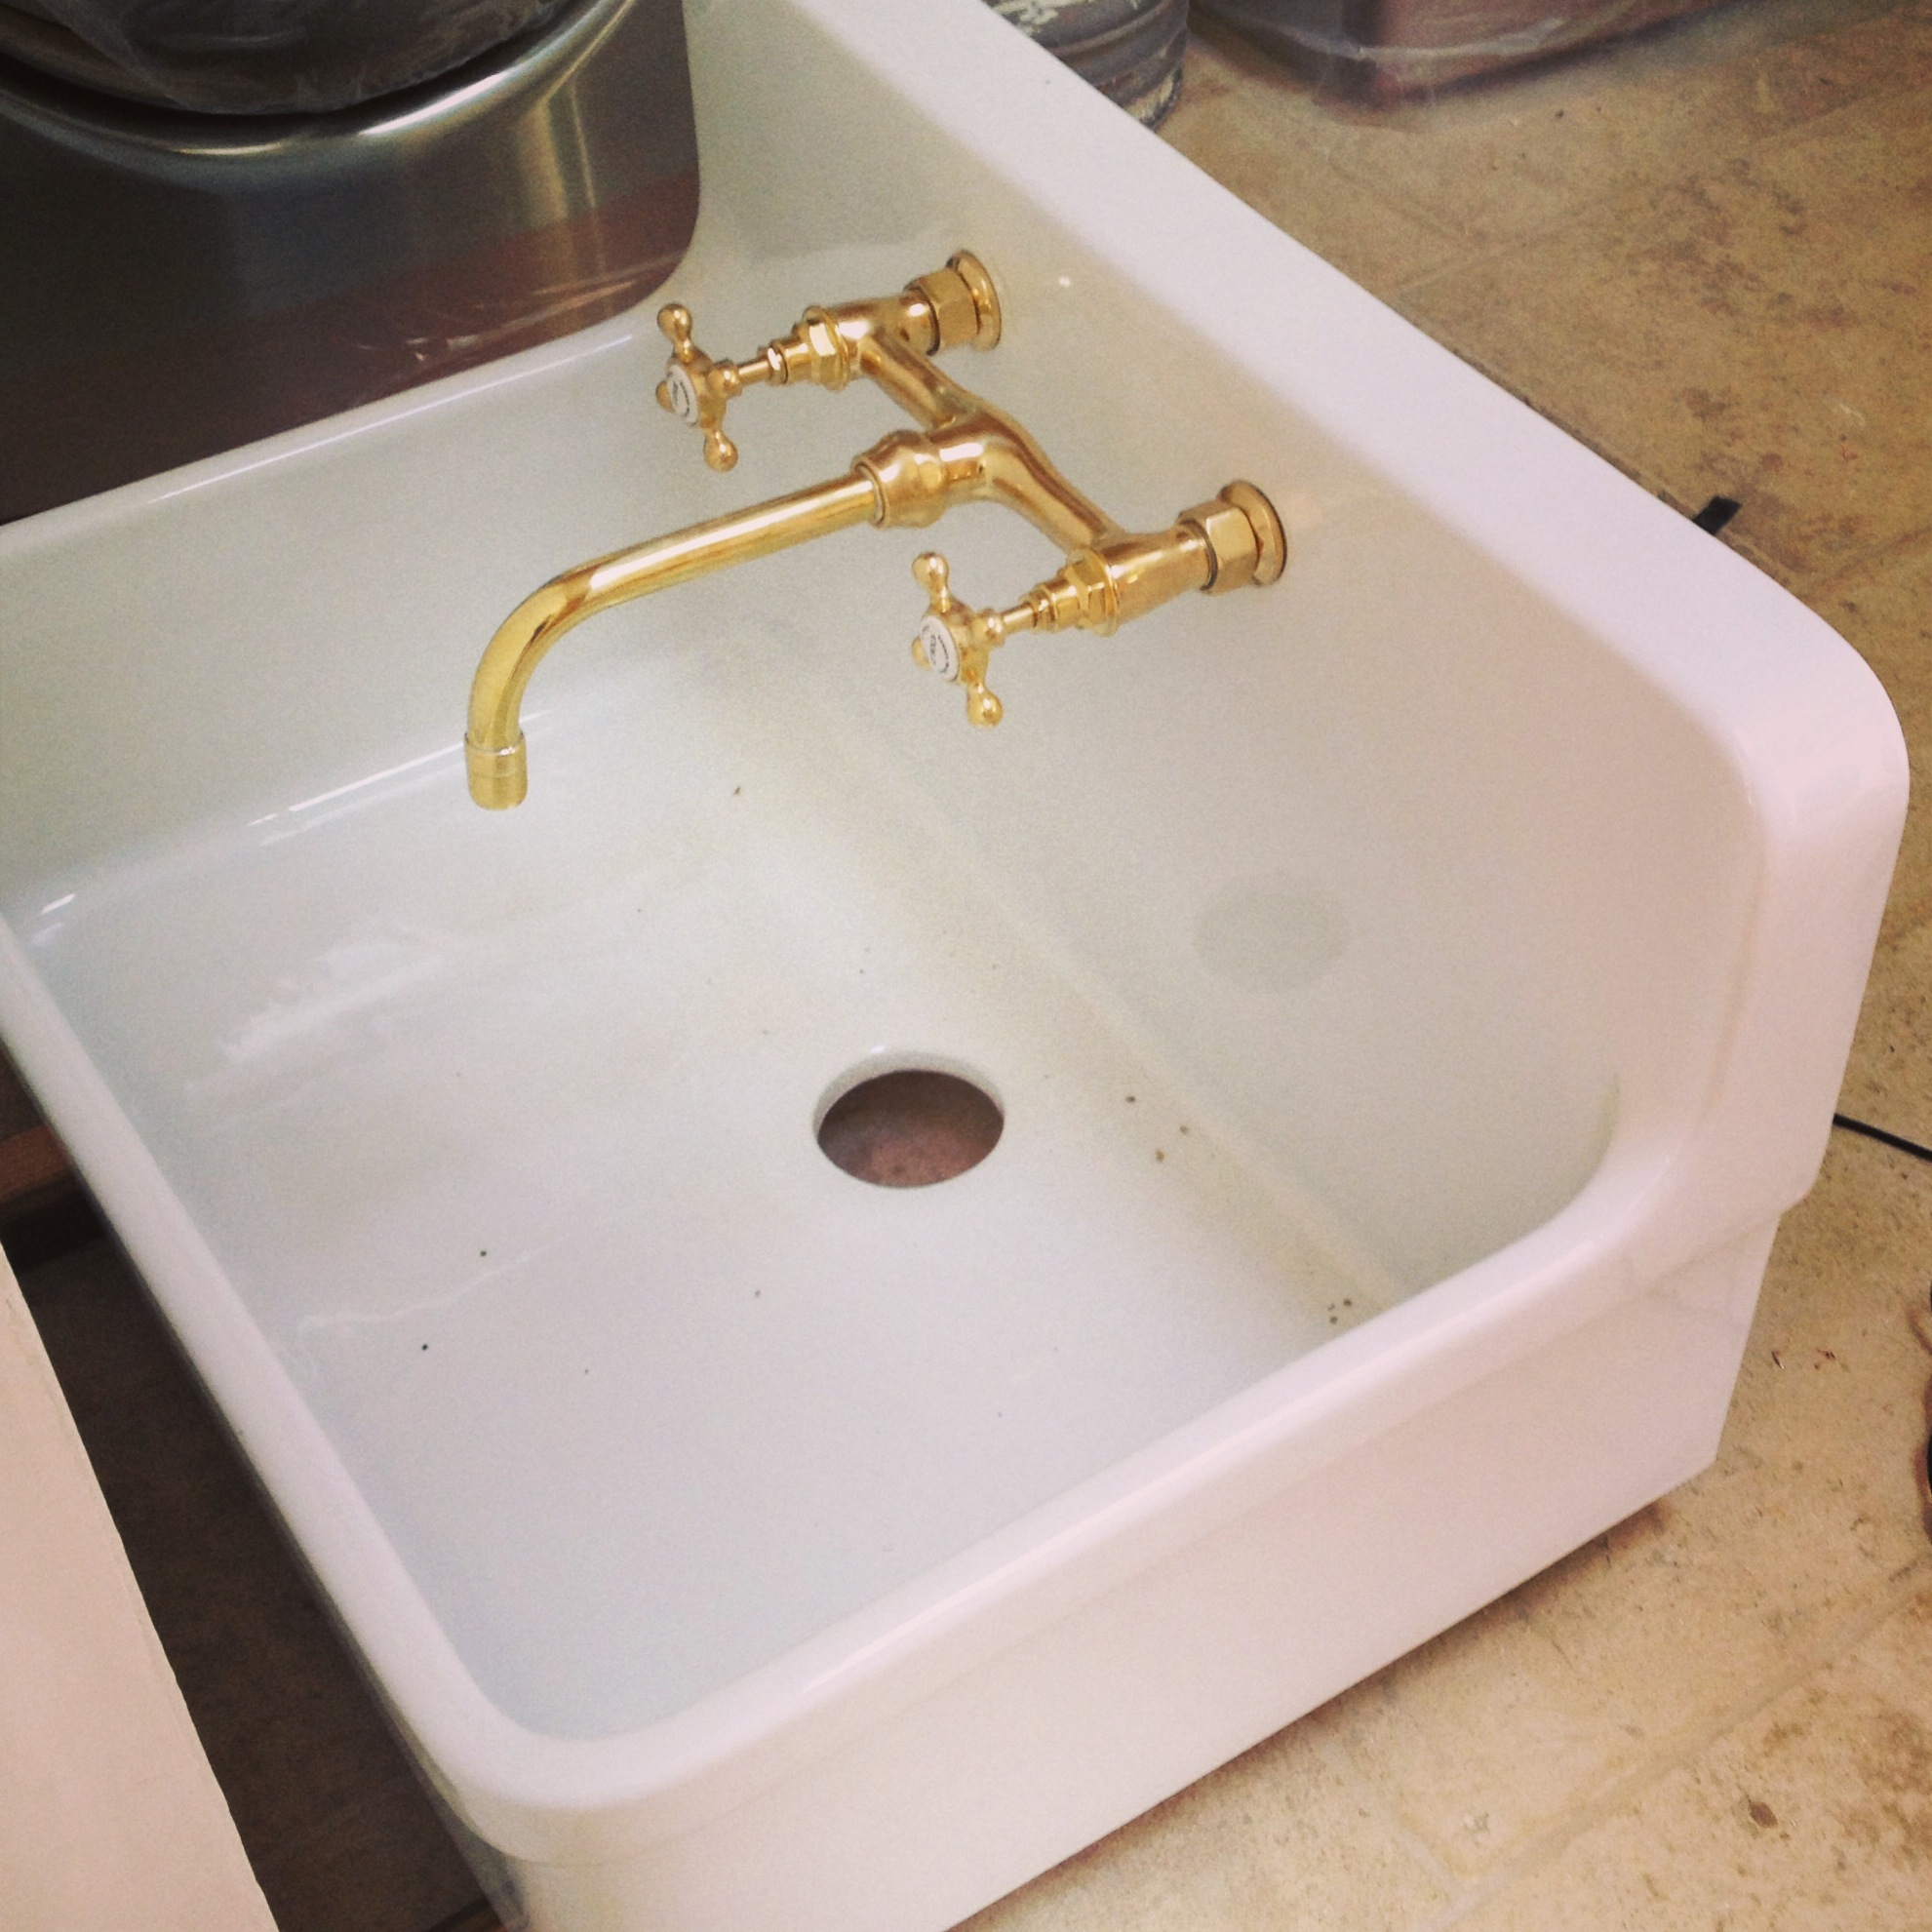 patina farm update un lacquered brass plumbing fixtures and the view from the pond 1 unlacquered brass kitchen faucet IMG